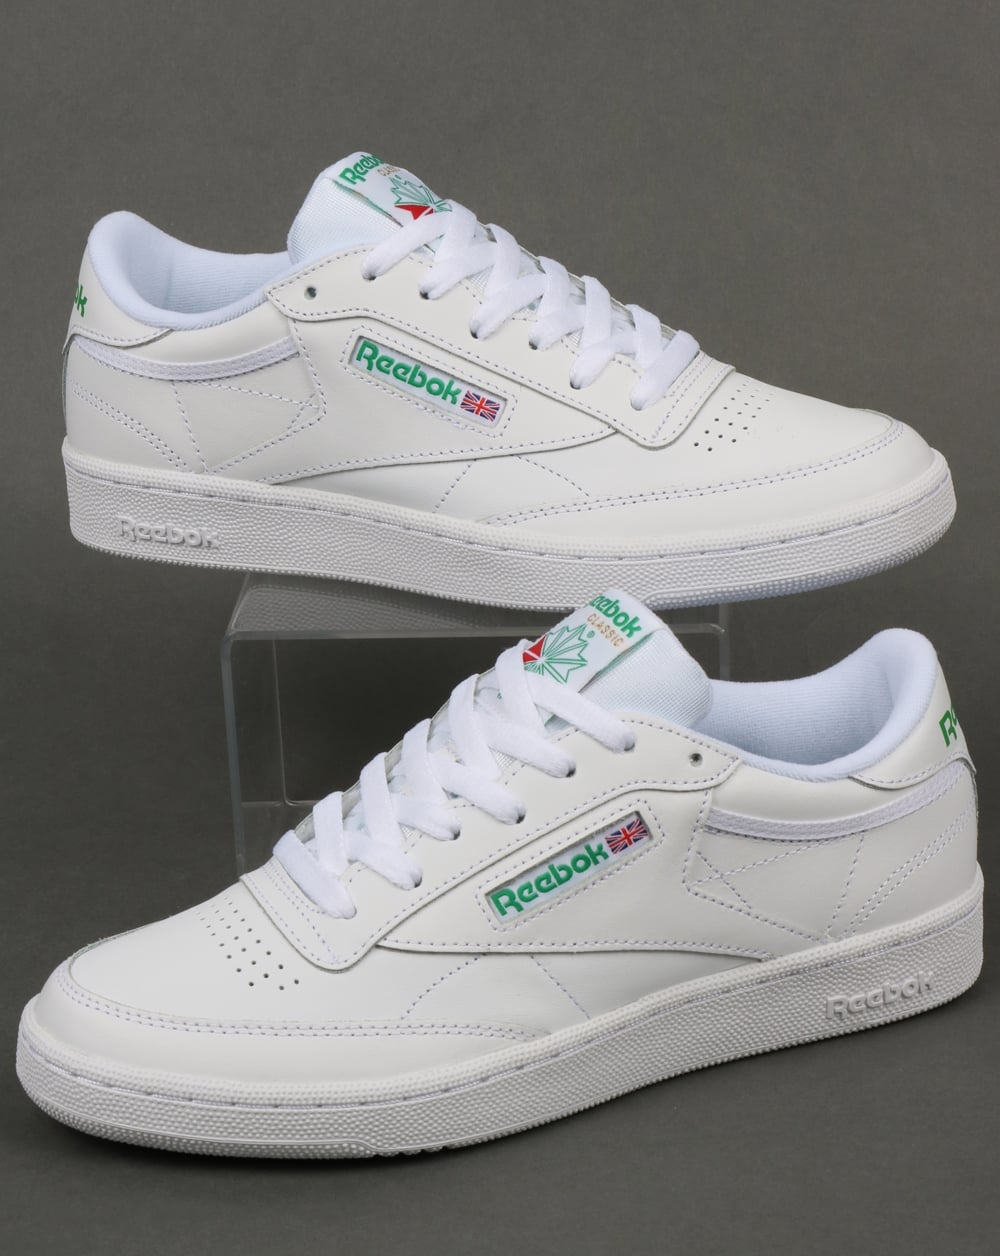 reputable site 59083 bbabd Reebok Reebok Club C 85 Trainers White Green